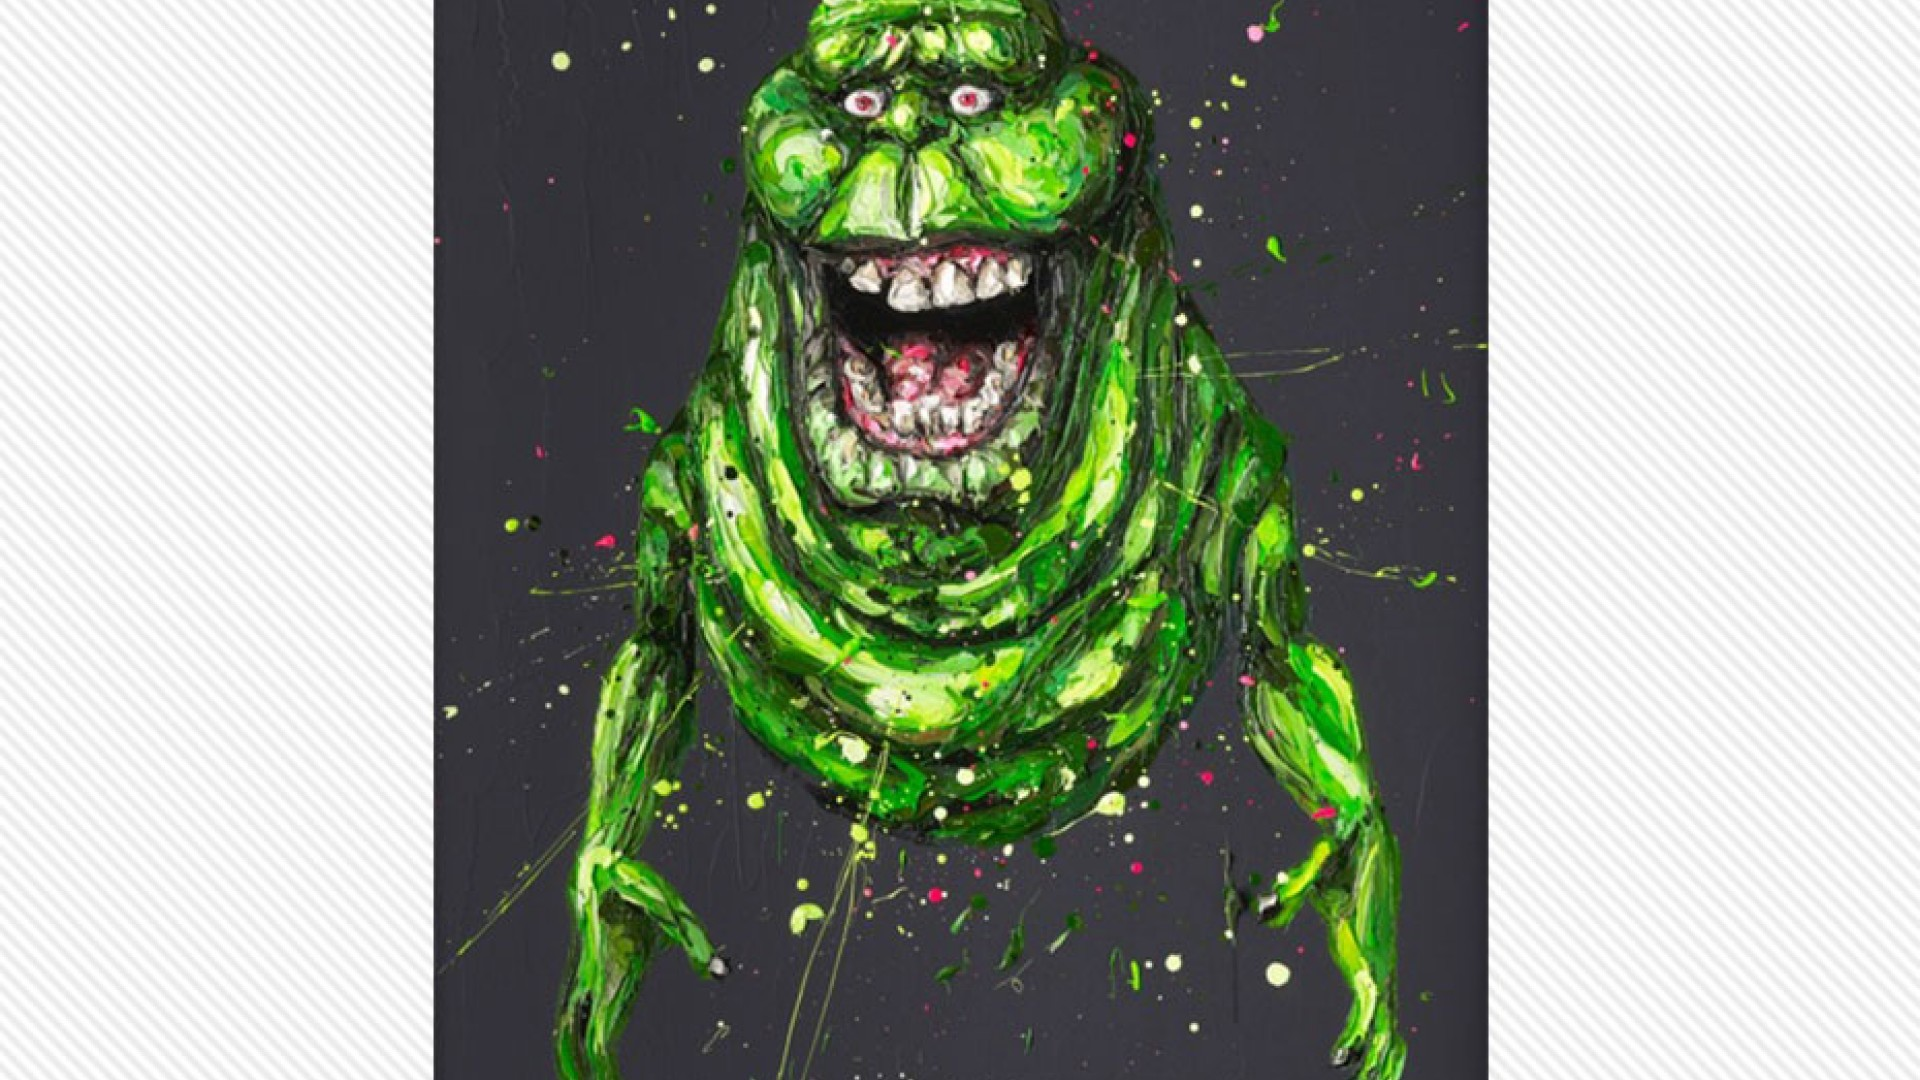 Slimer by Paul Oz